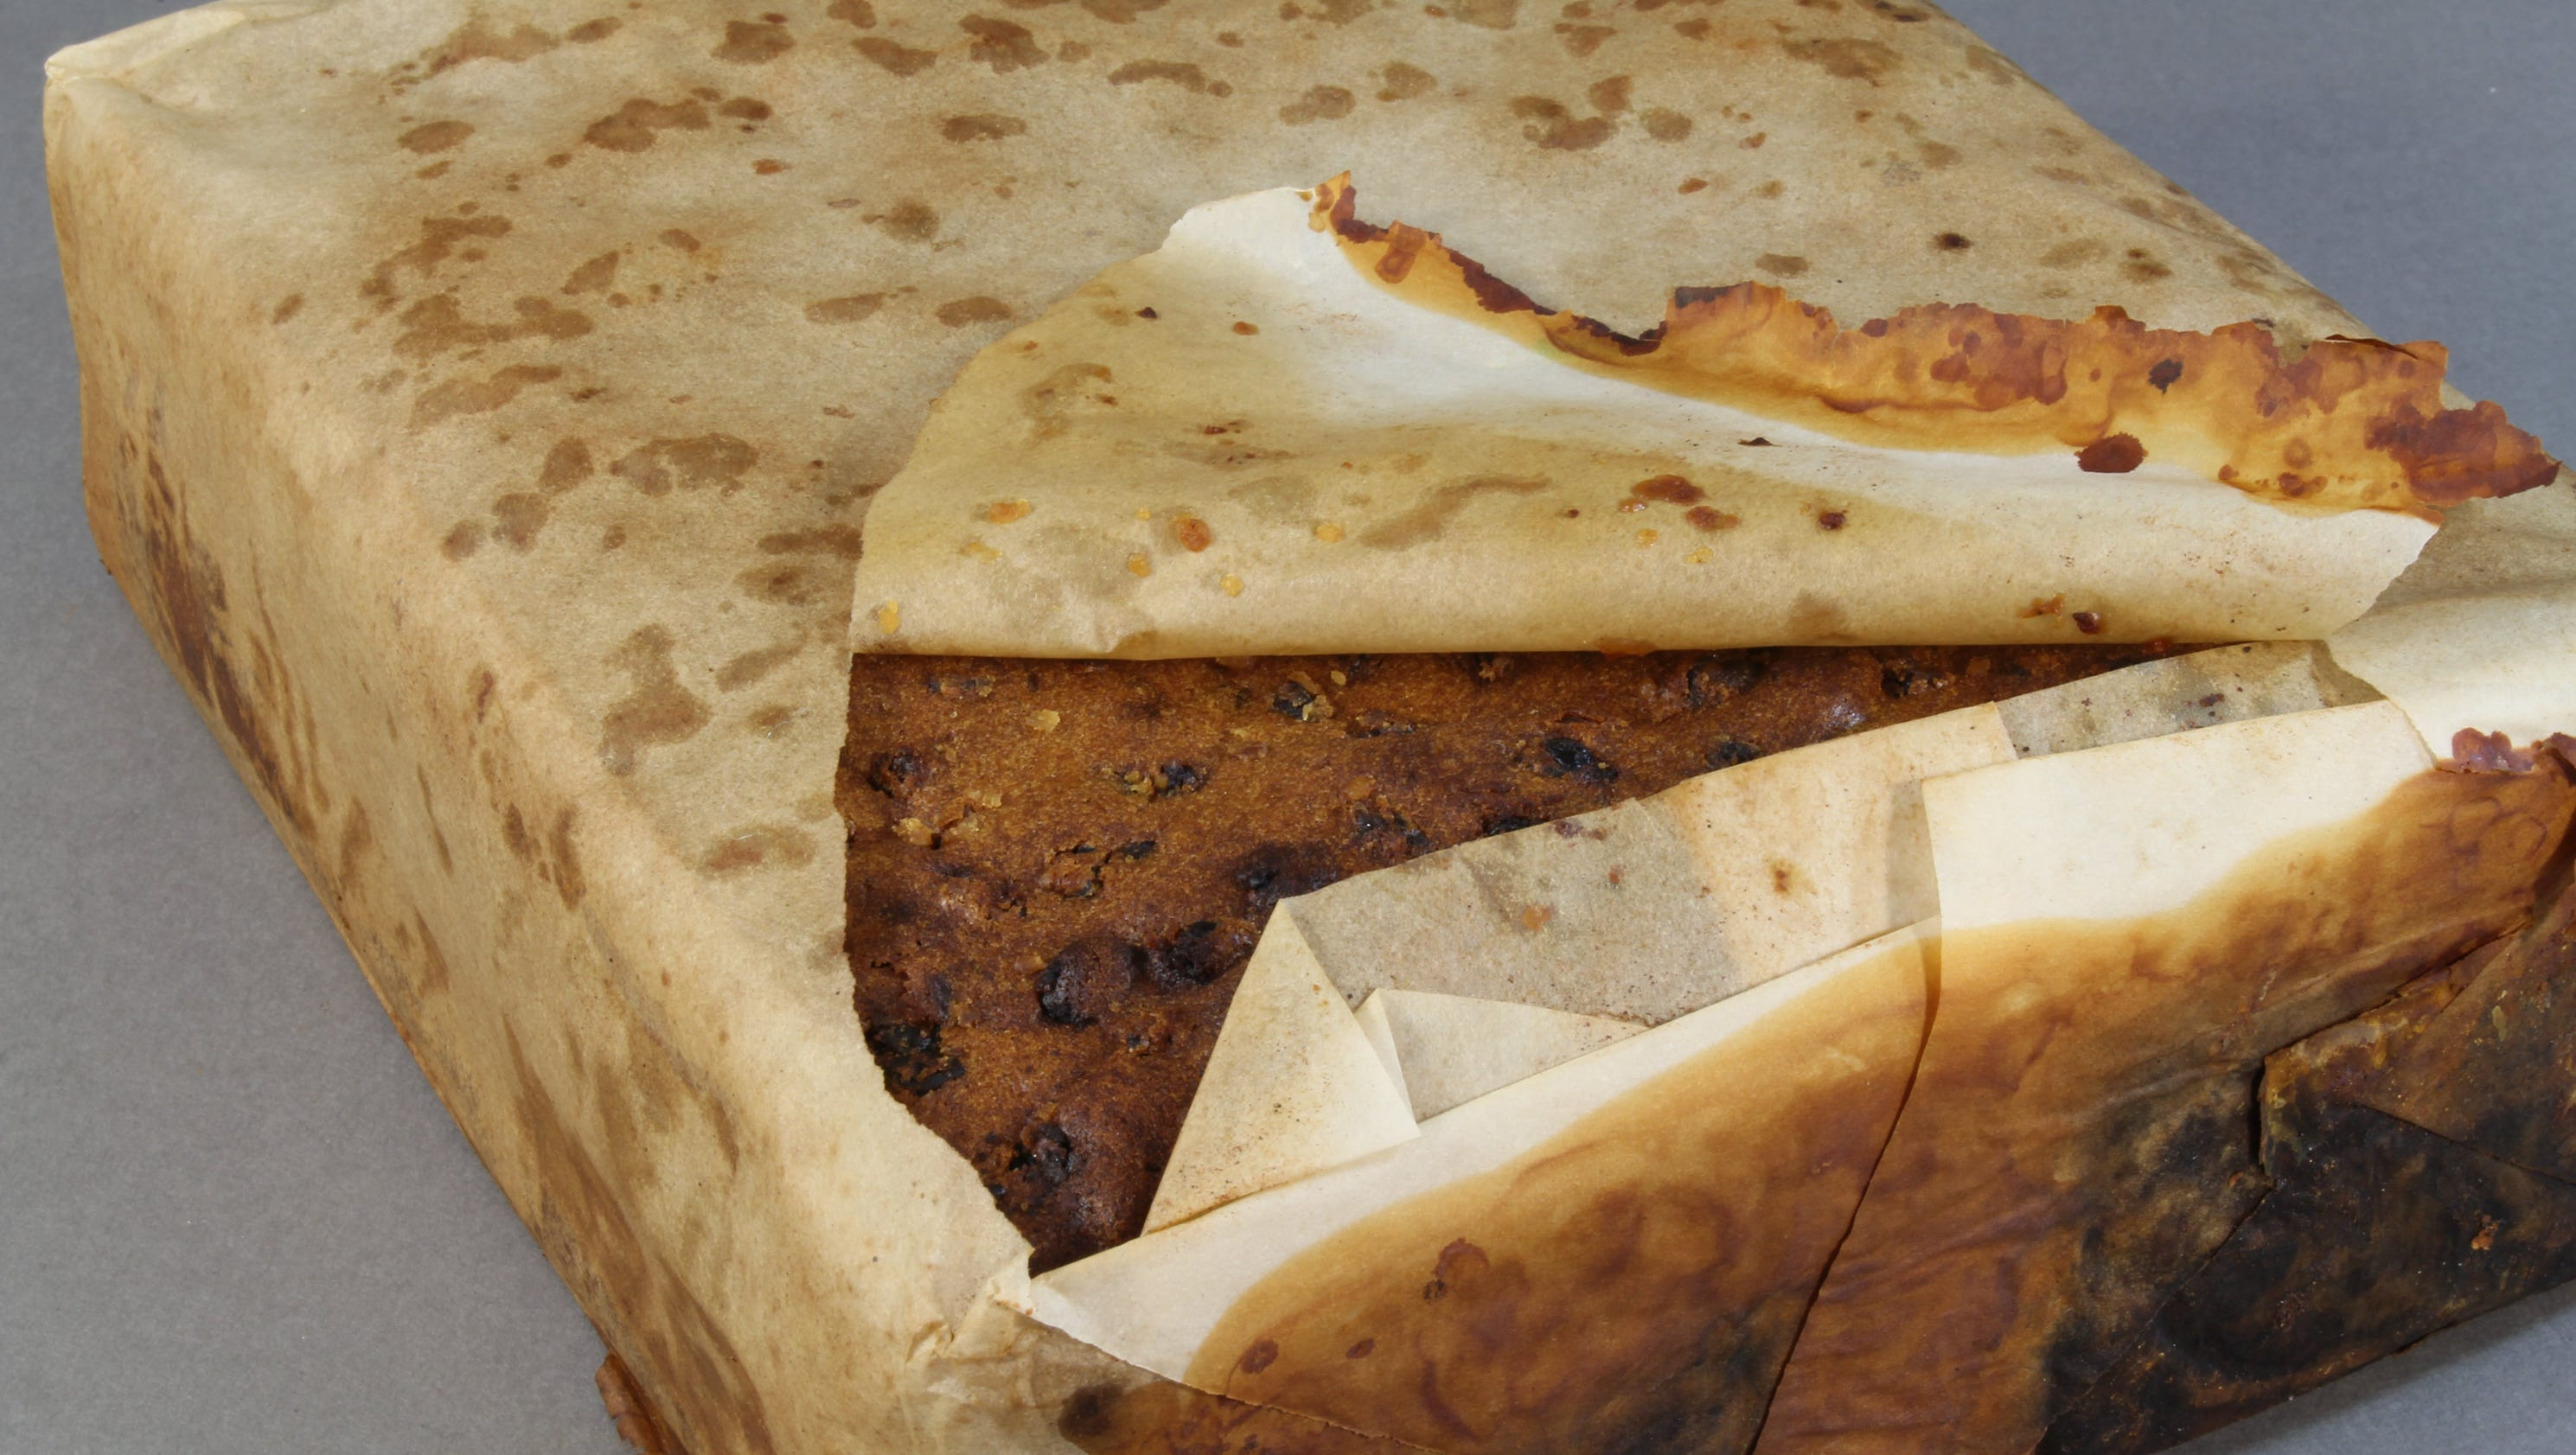 Yearold Fruitcake Found In Antarctica Looked And Smelled Edible - 100 year old photos antarctica